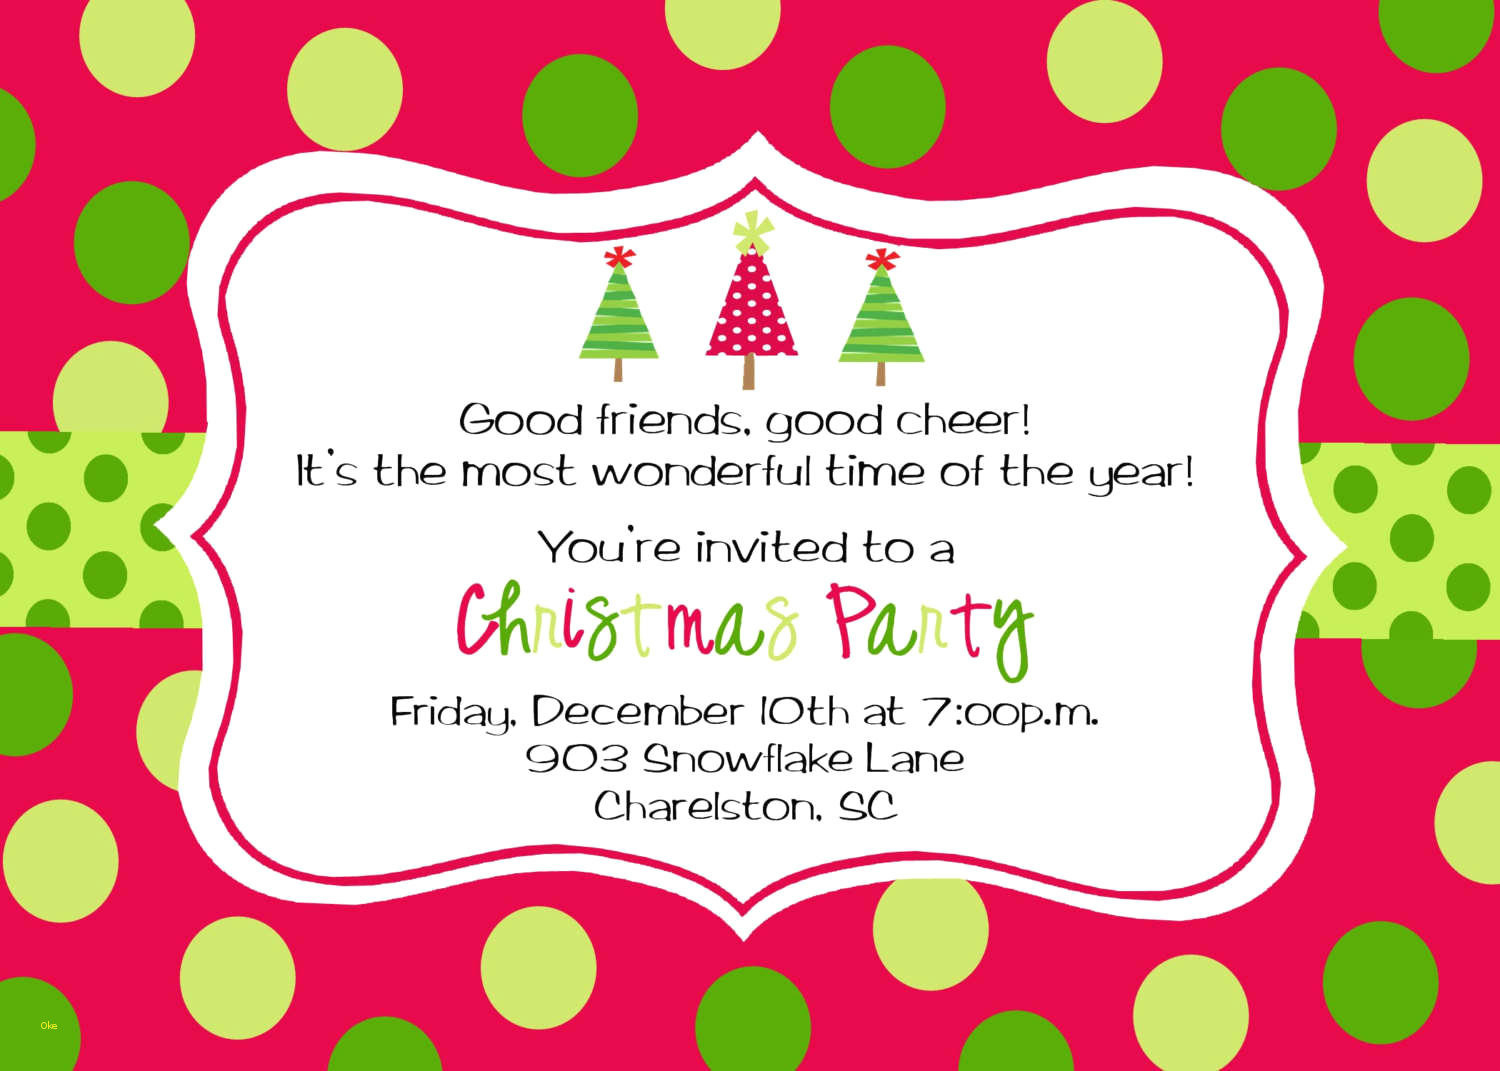 Printable Christmas Party Invitations | Download Them Or Print - Free Printable Christmas Party Invitations